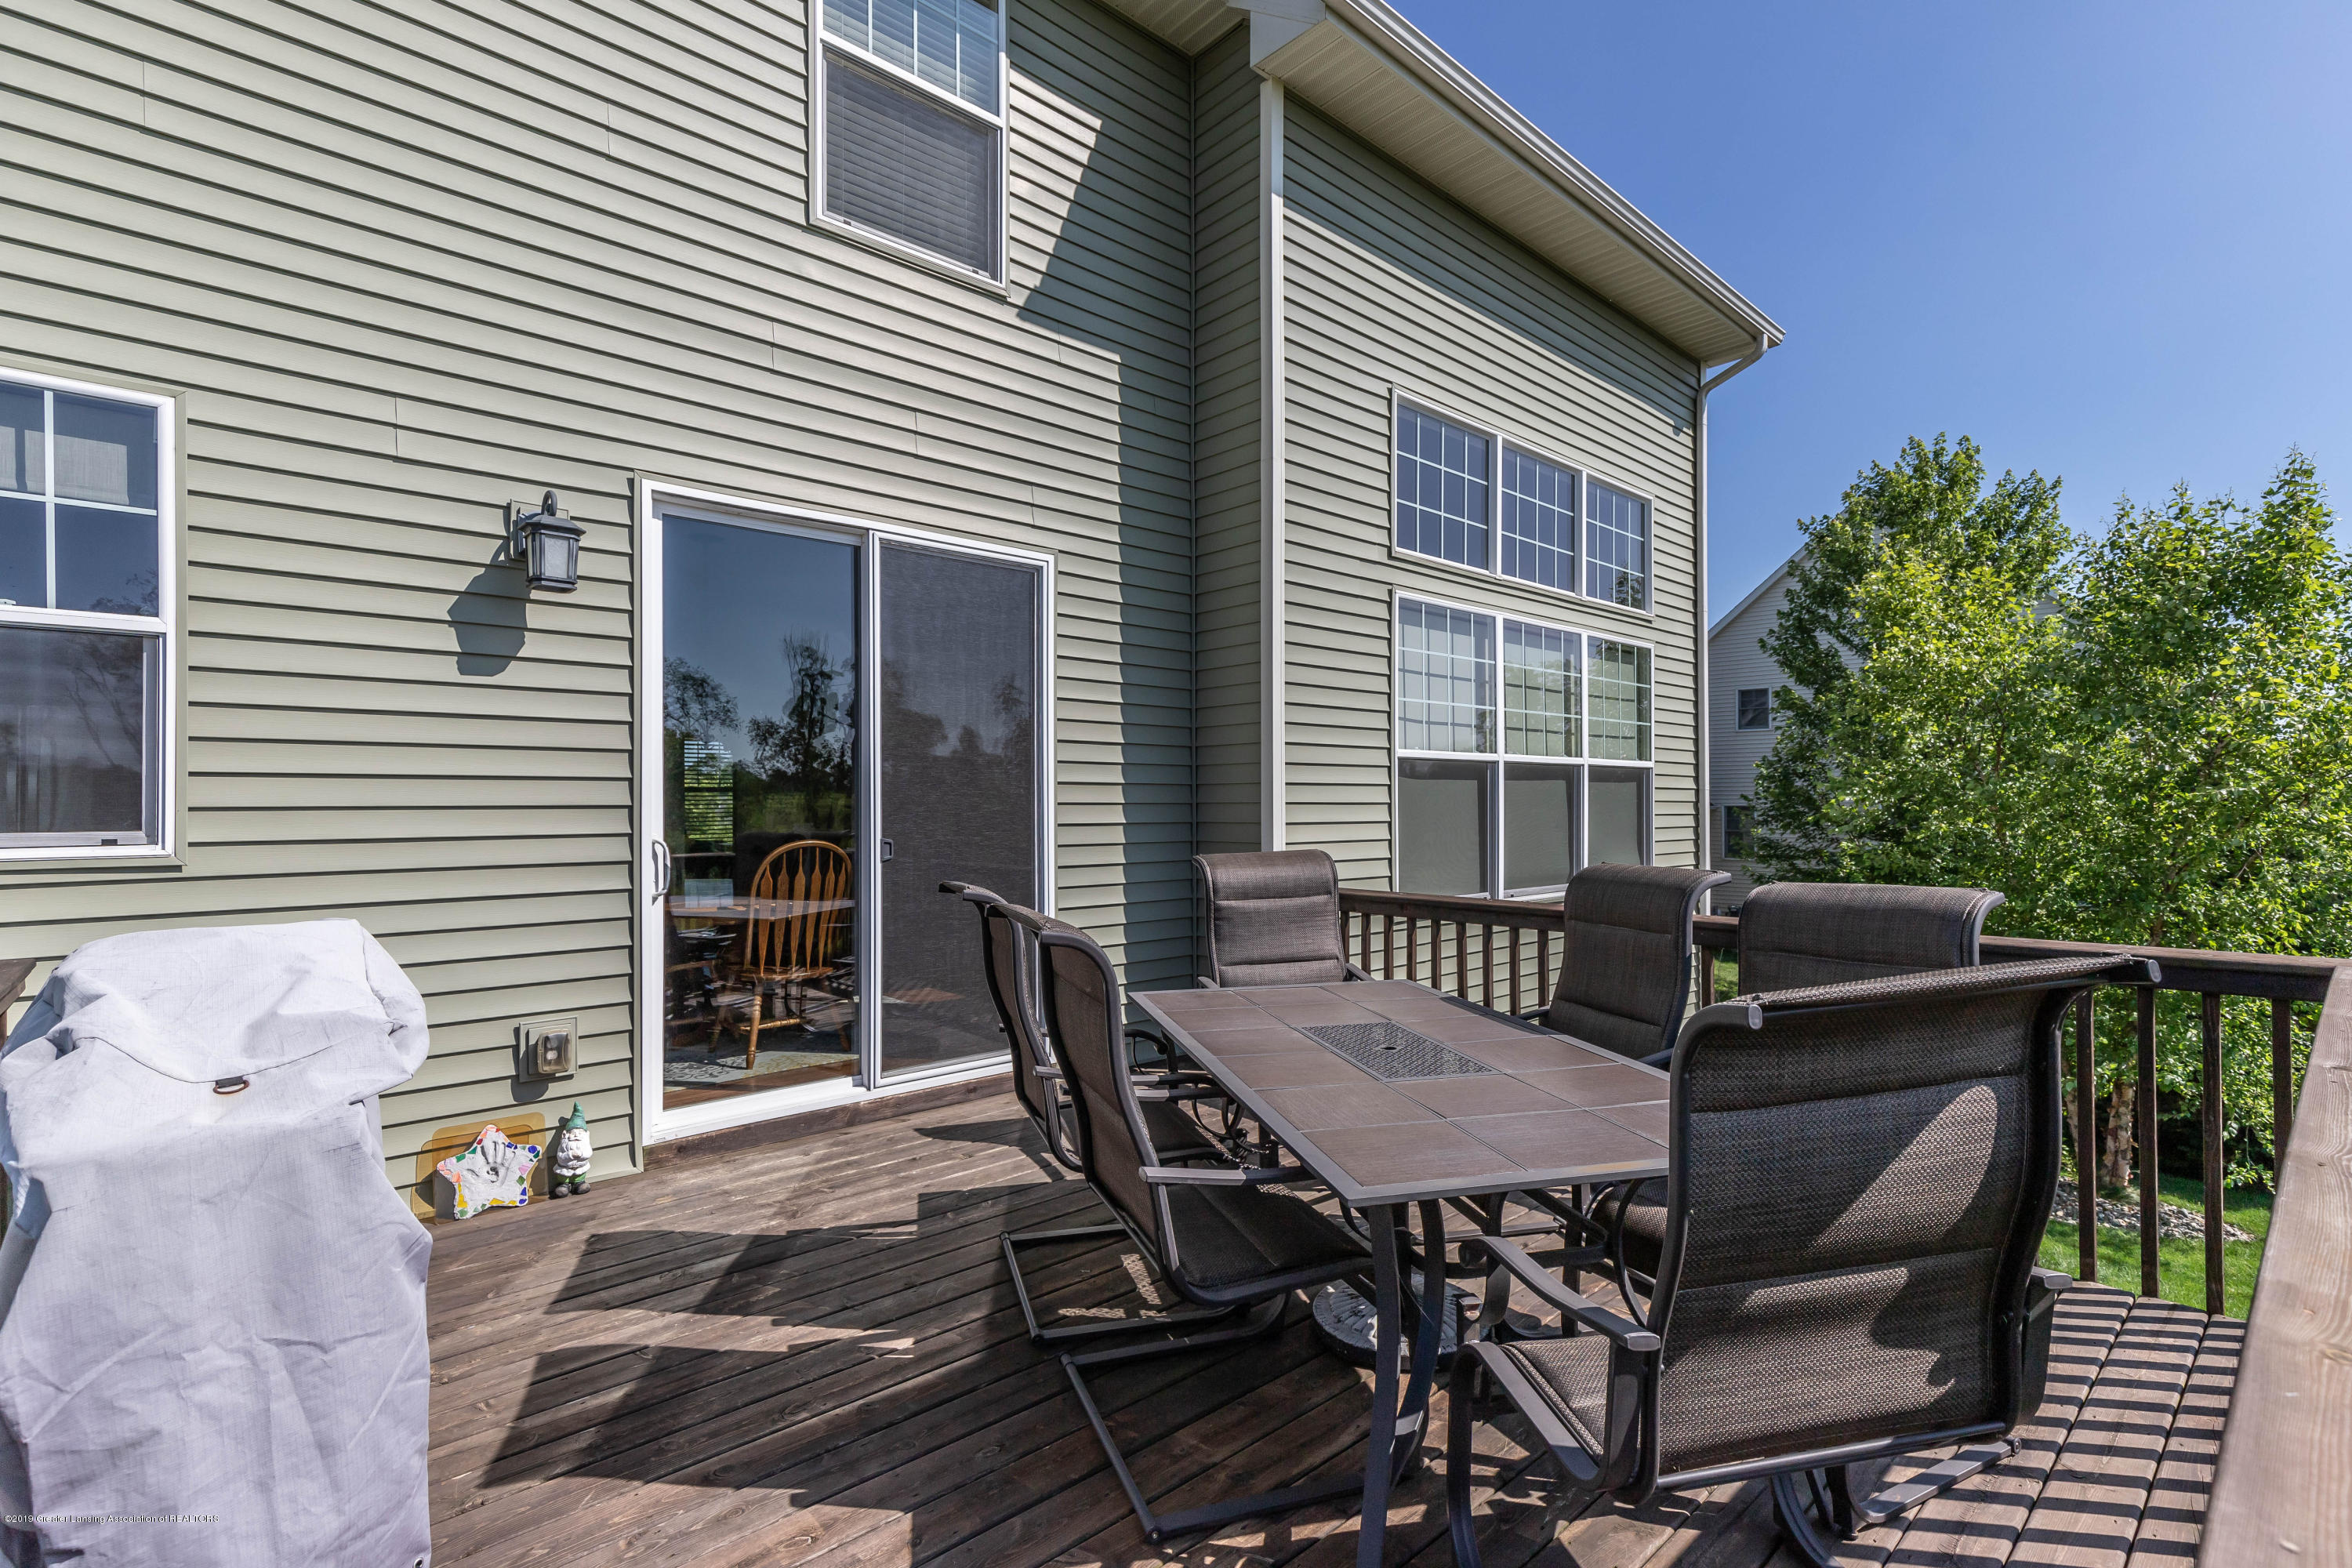 11840 Murano Dr - Deck - 28